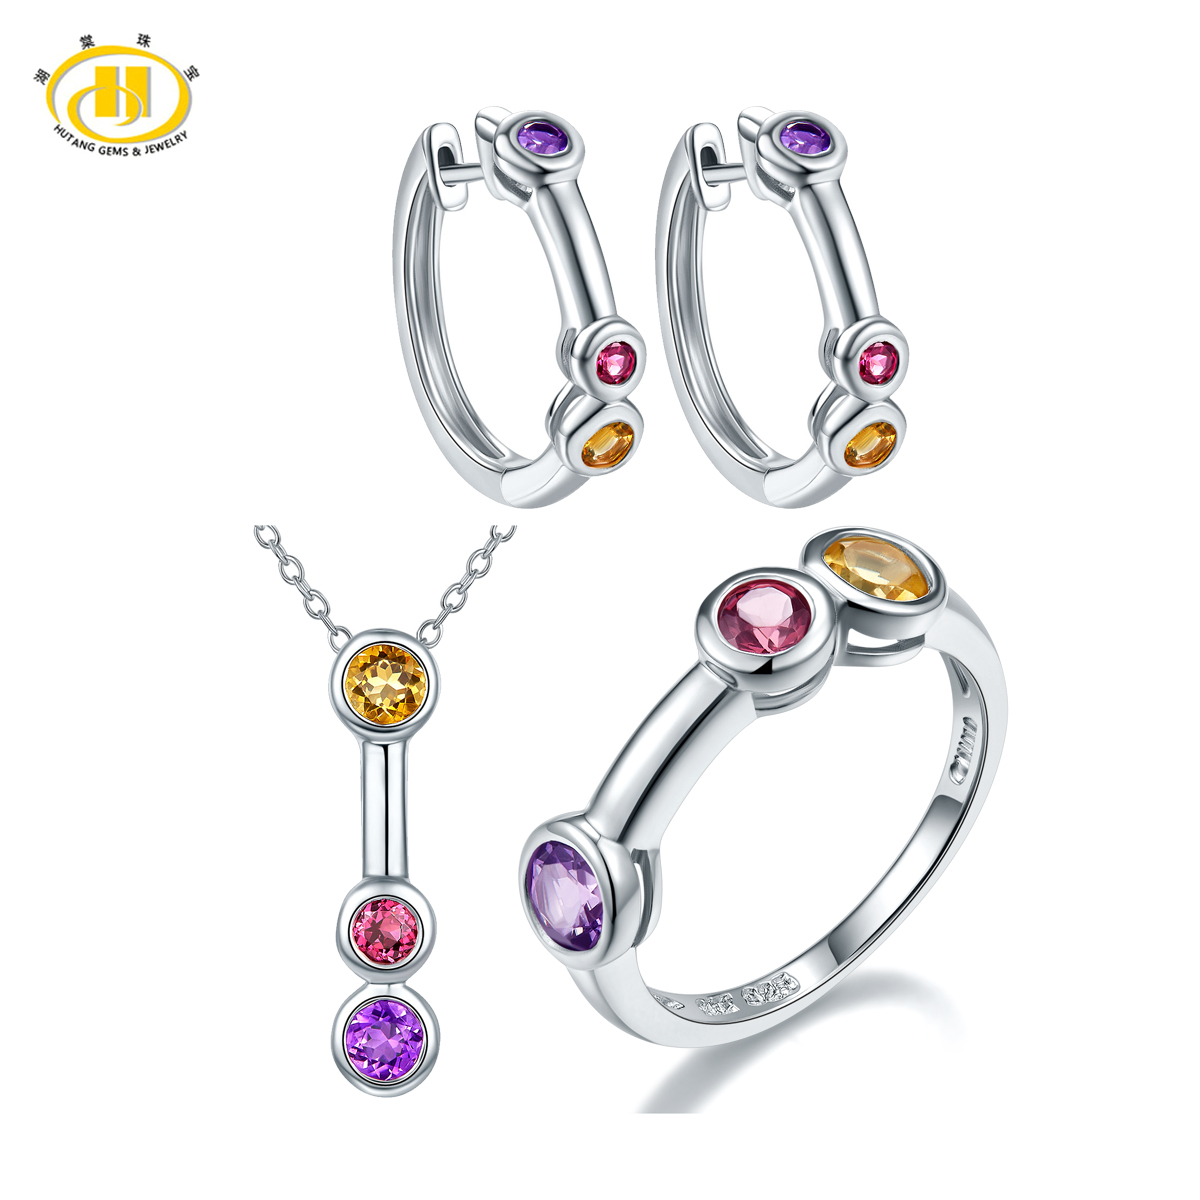 Hutang 3-stone Classic Multi-color Gemstone Jewelry Sets for Women Solid 925 Sterling Silver Ring Pendant Earrings Stylish Style цены